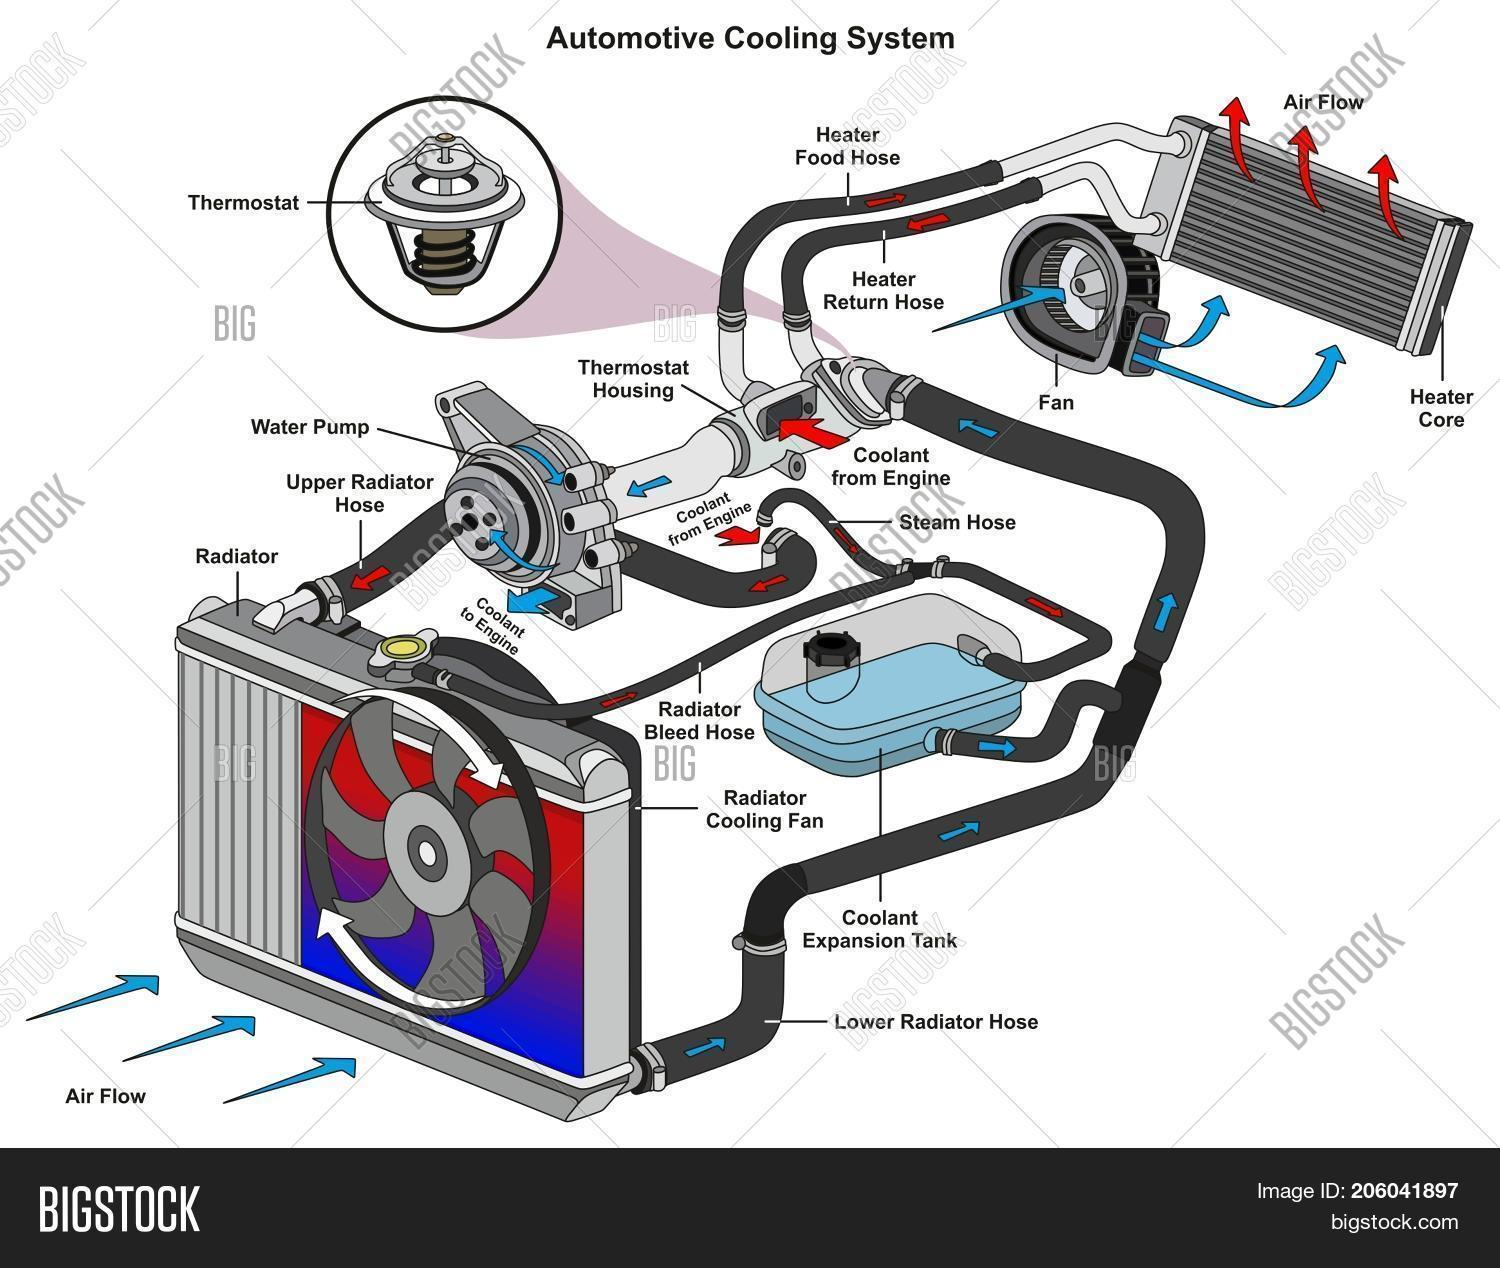 hight resolution of automotive cooling image photo free trial bigstock engine cooling system flow diagram